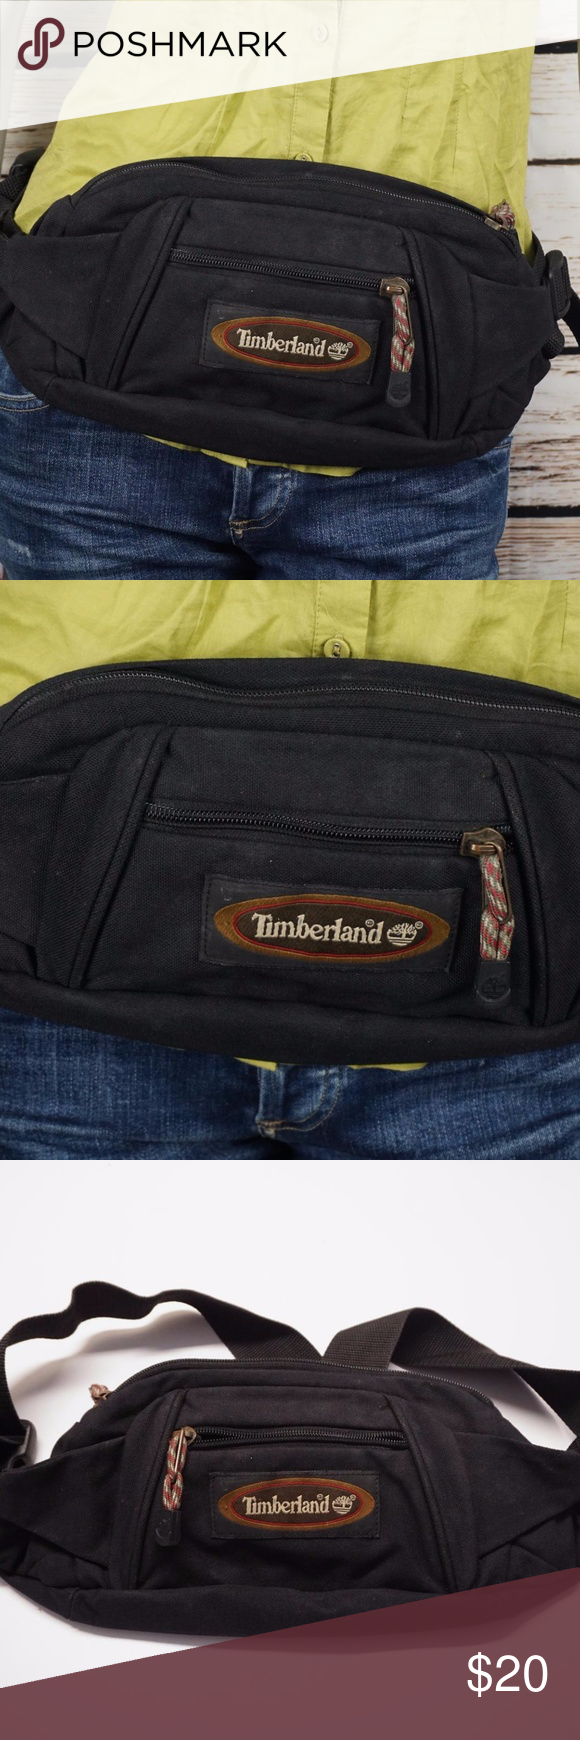 ca5f5e31e17 Timberland Waist Bag Fanny Pack Belt Wallet Black Hip Pouch Travel  Organizer Gently used On the larger size. Will fit approx. 32